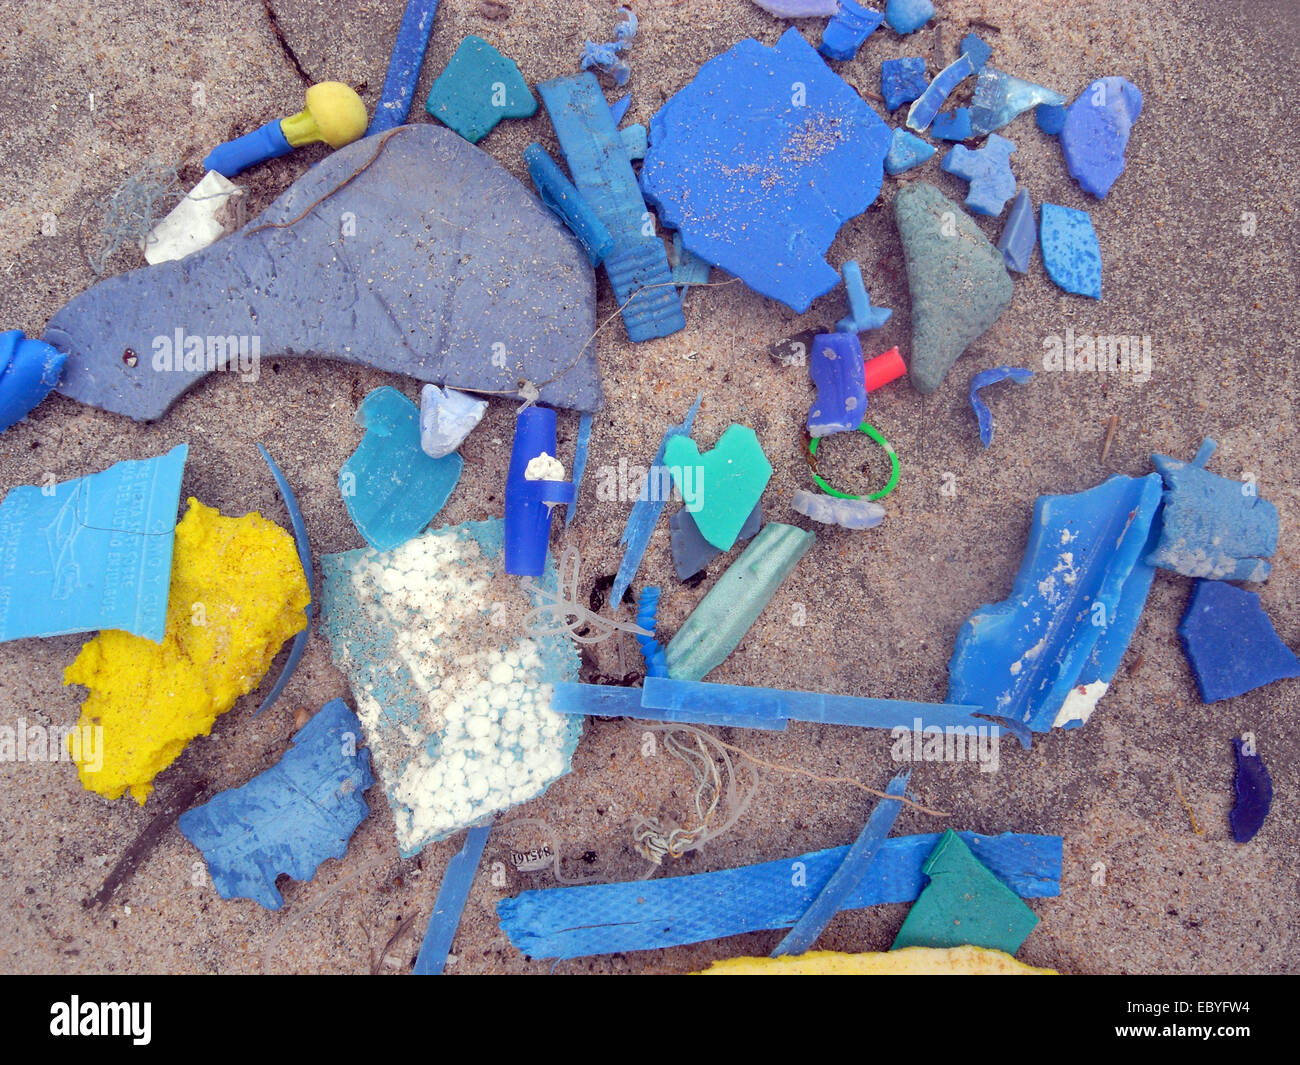 Microplastic fragments collected by volunteers during a beach cleanup, North Cottesloe Beach, Perth, Western Australia - Stock Image